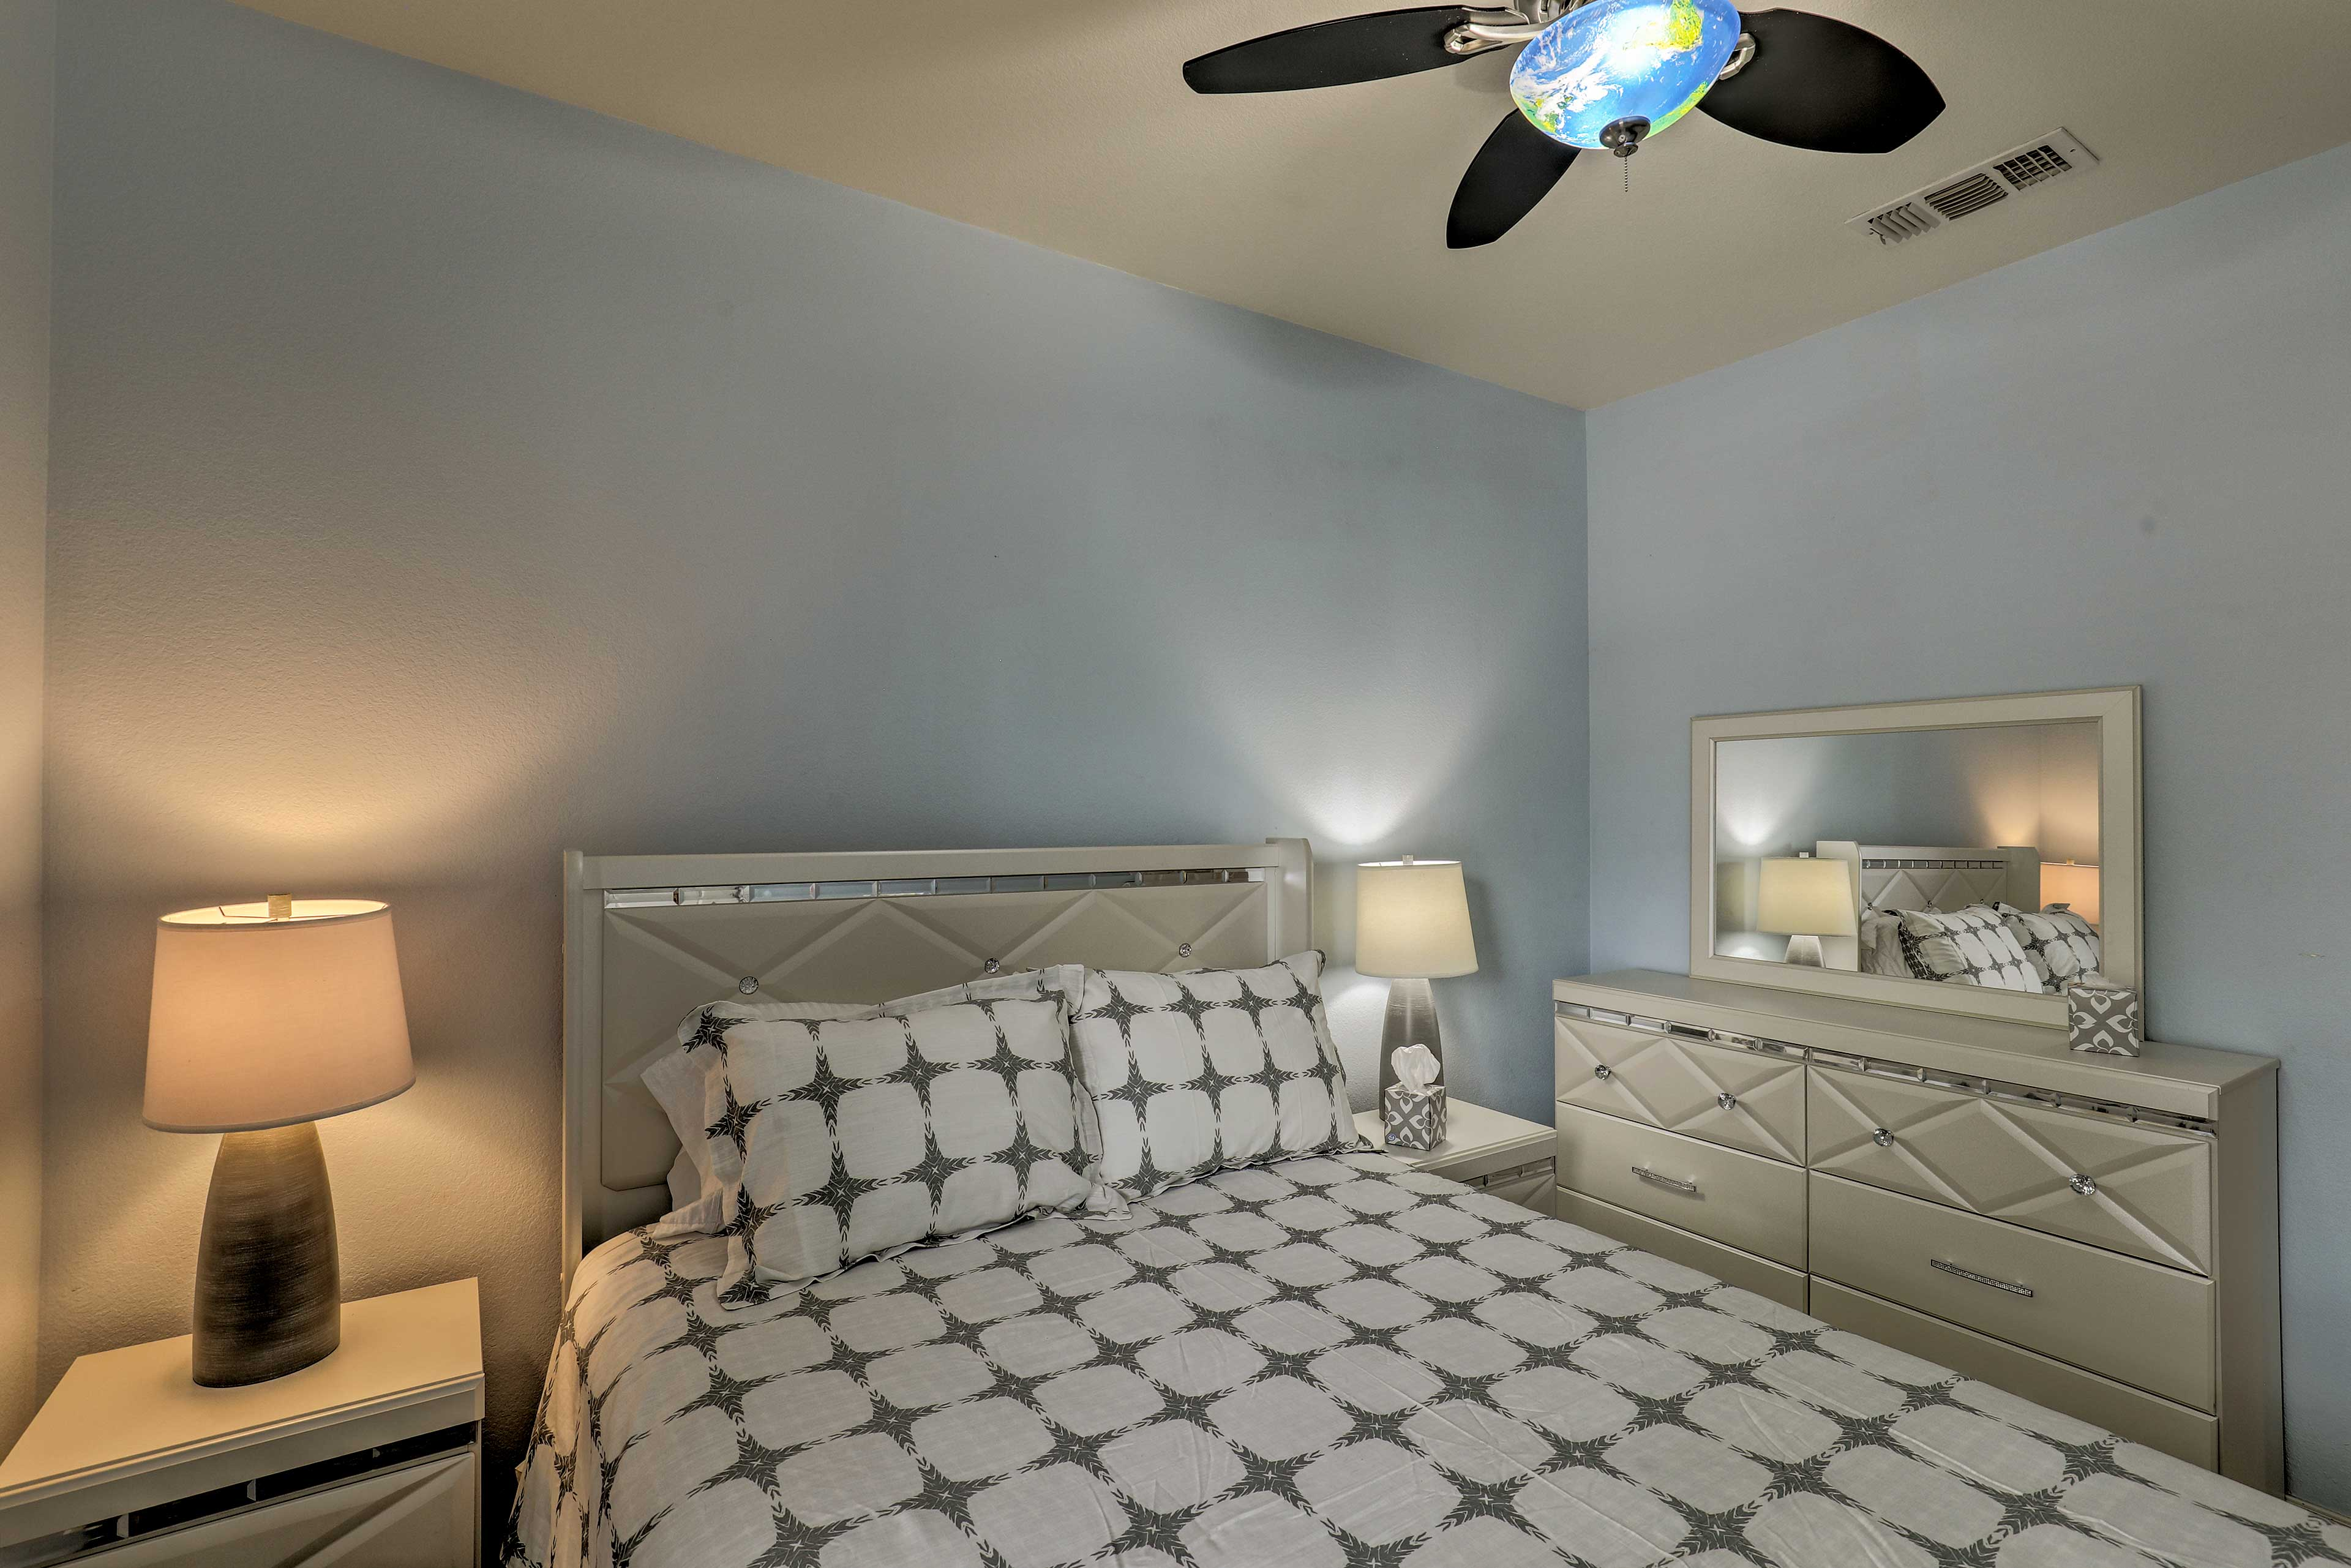 Use the bedside lamps to read until you're ready to sleep.